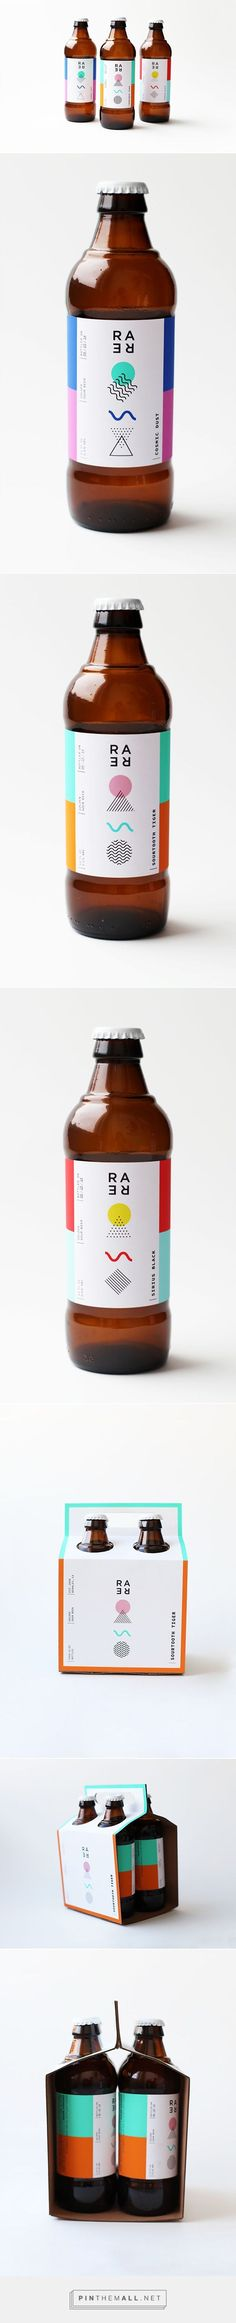 Rare Barrel - A Sour Beer Co. on Behance: